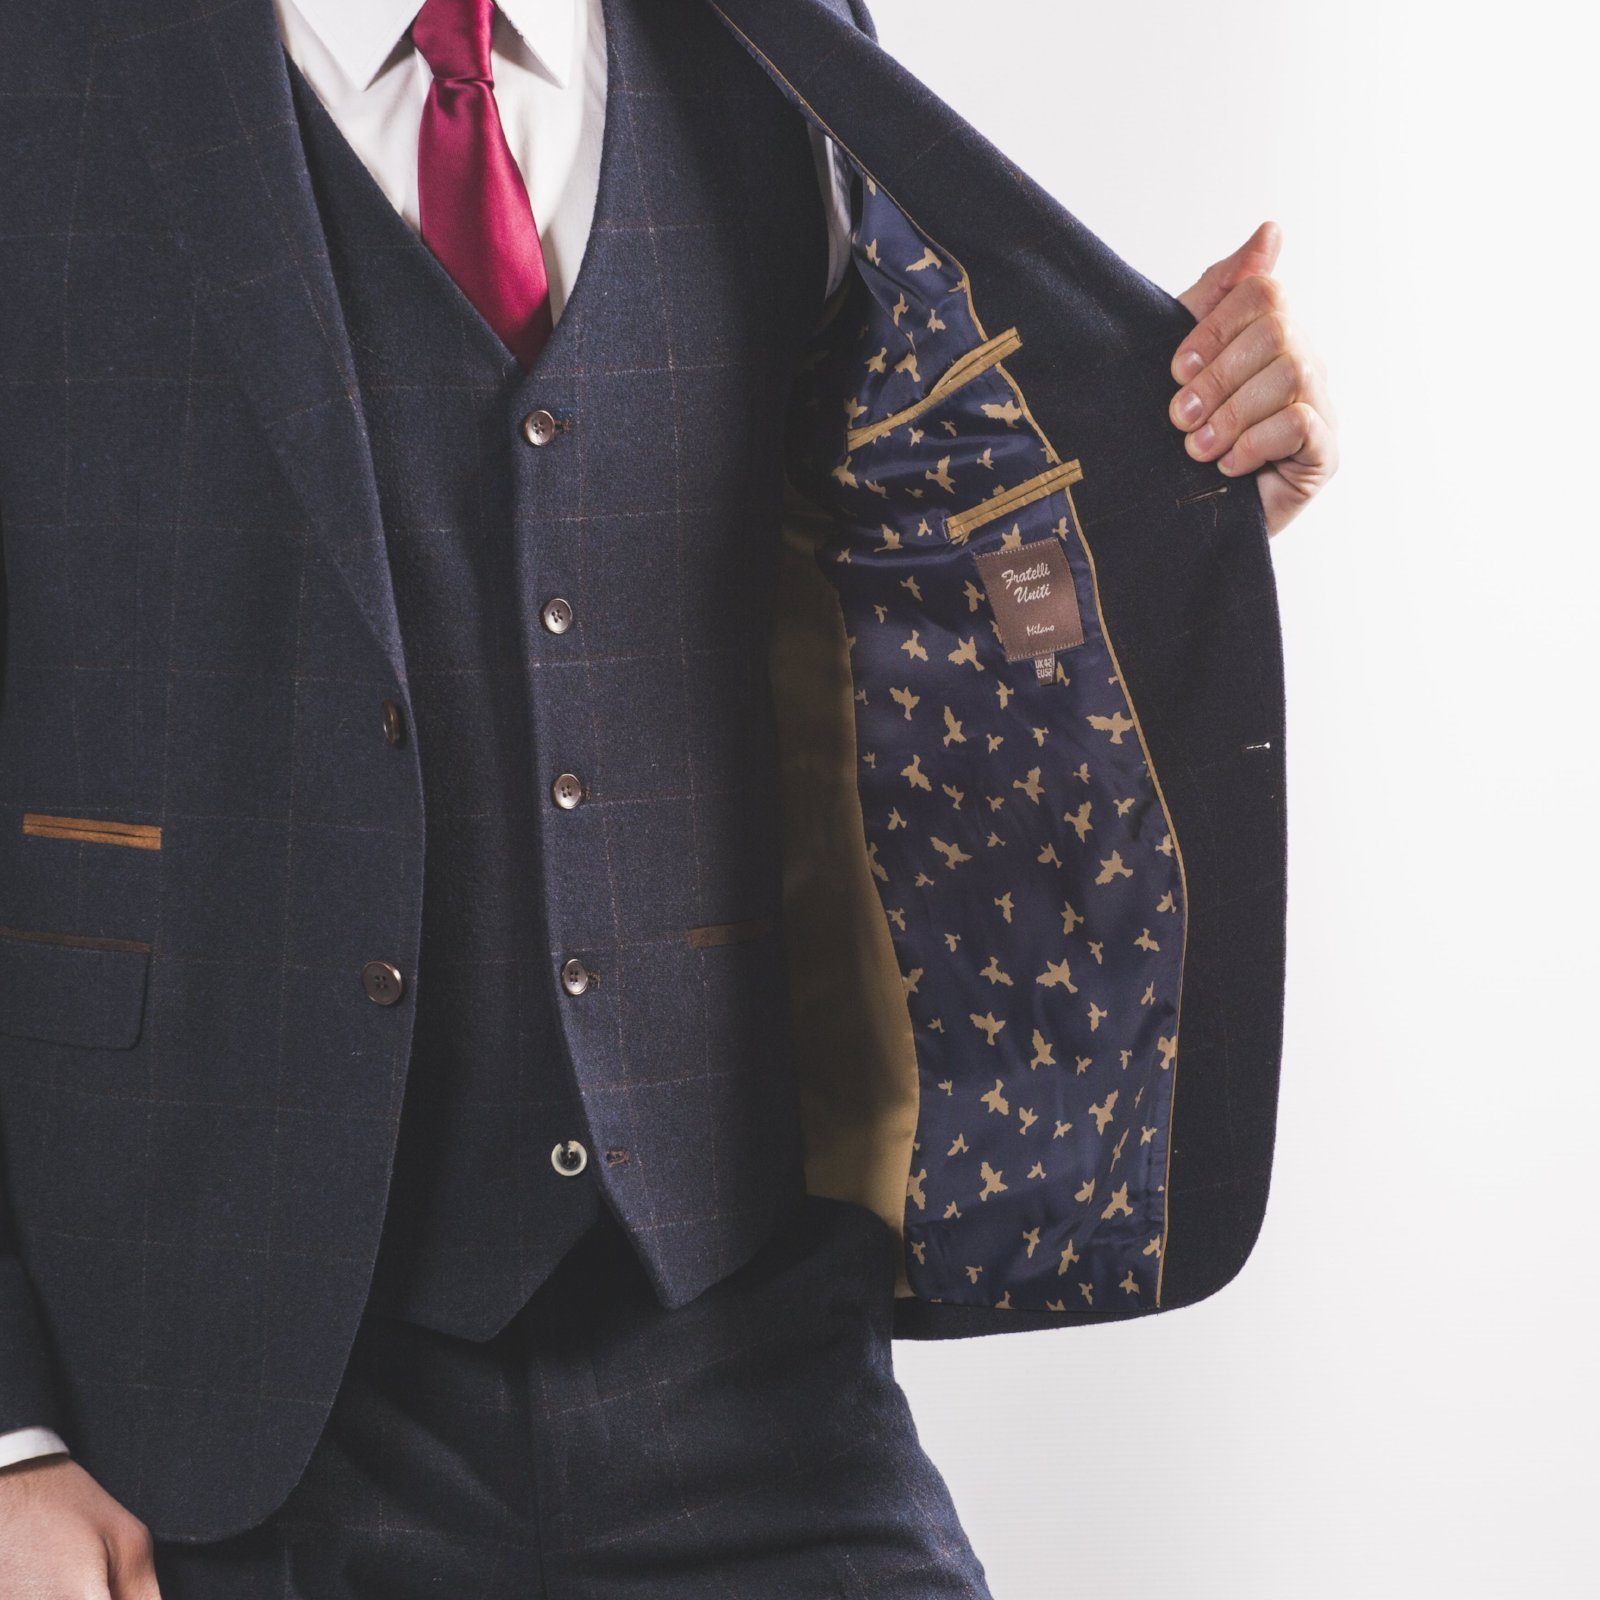 Navy Wool Mix Windowpane Suit - Leonard Silver